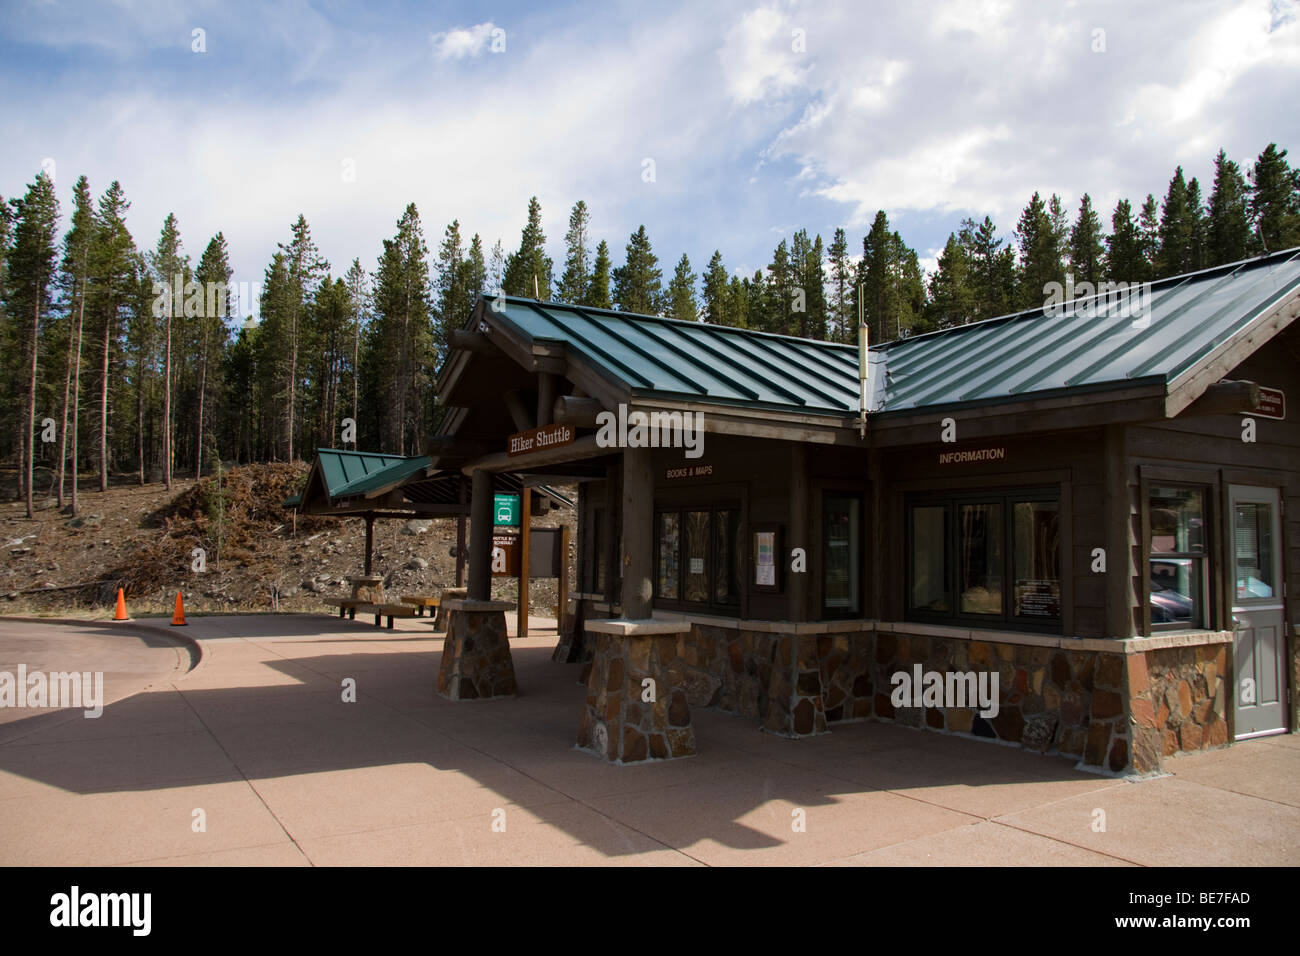 Shuttle bus Park and Ride building, Rocky Mountain National Park, Colorado - Stock Image